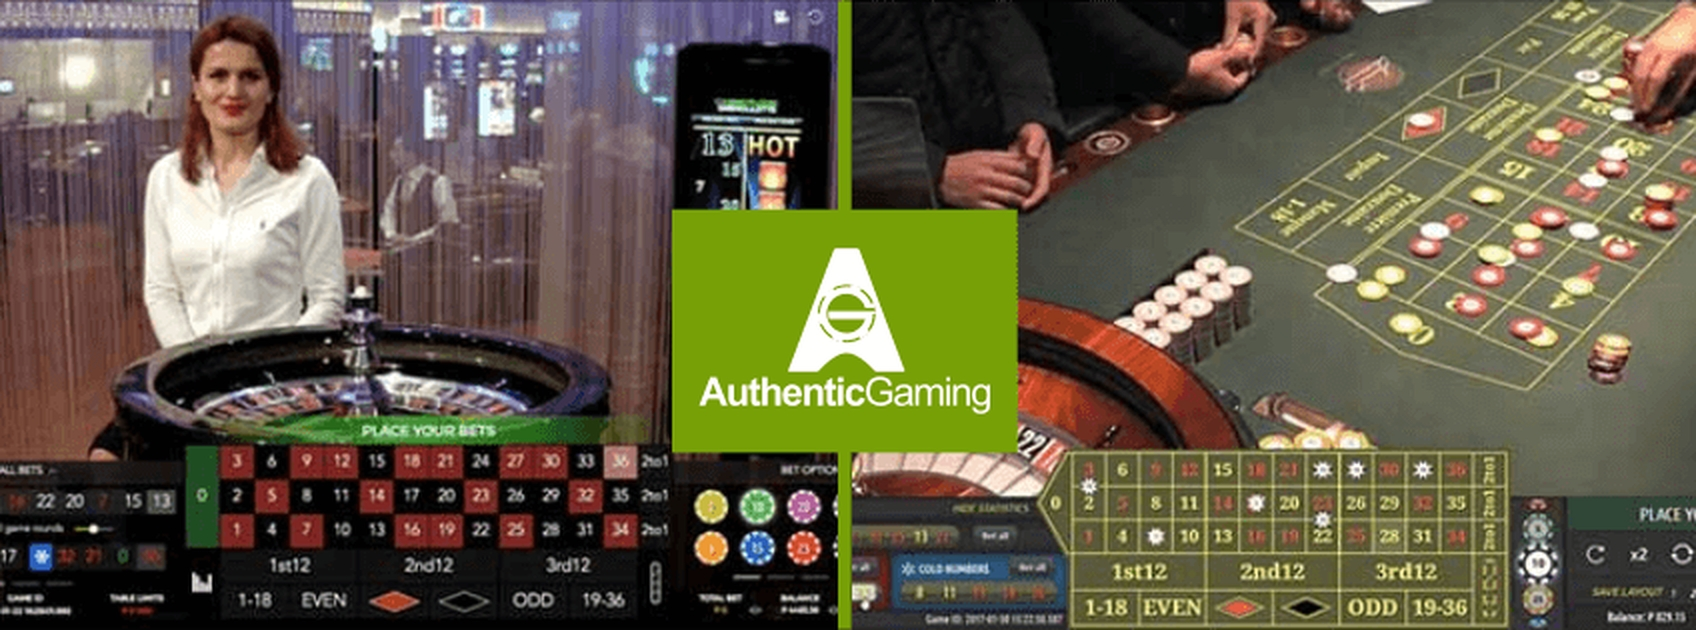 The Live Roulette DUO Saint Vincent Online Slot Demo Game by Authentic Gaming